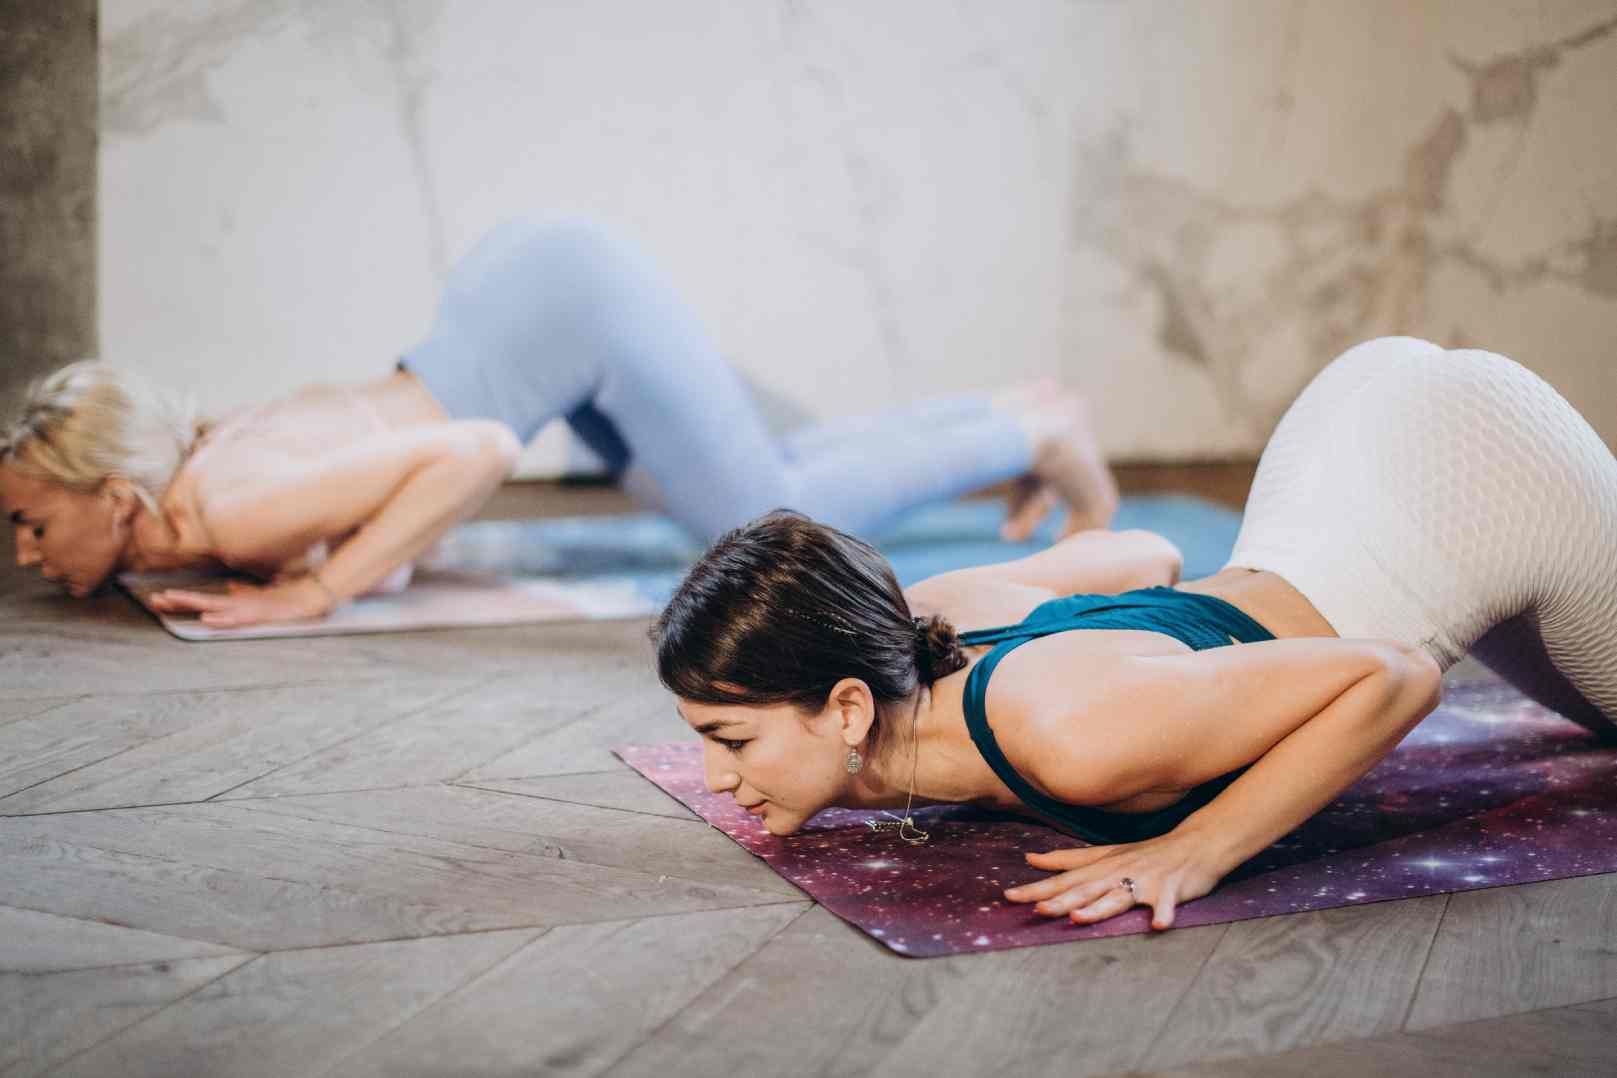 Two Young Women practice the Caterpillar Pose